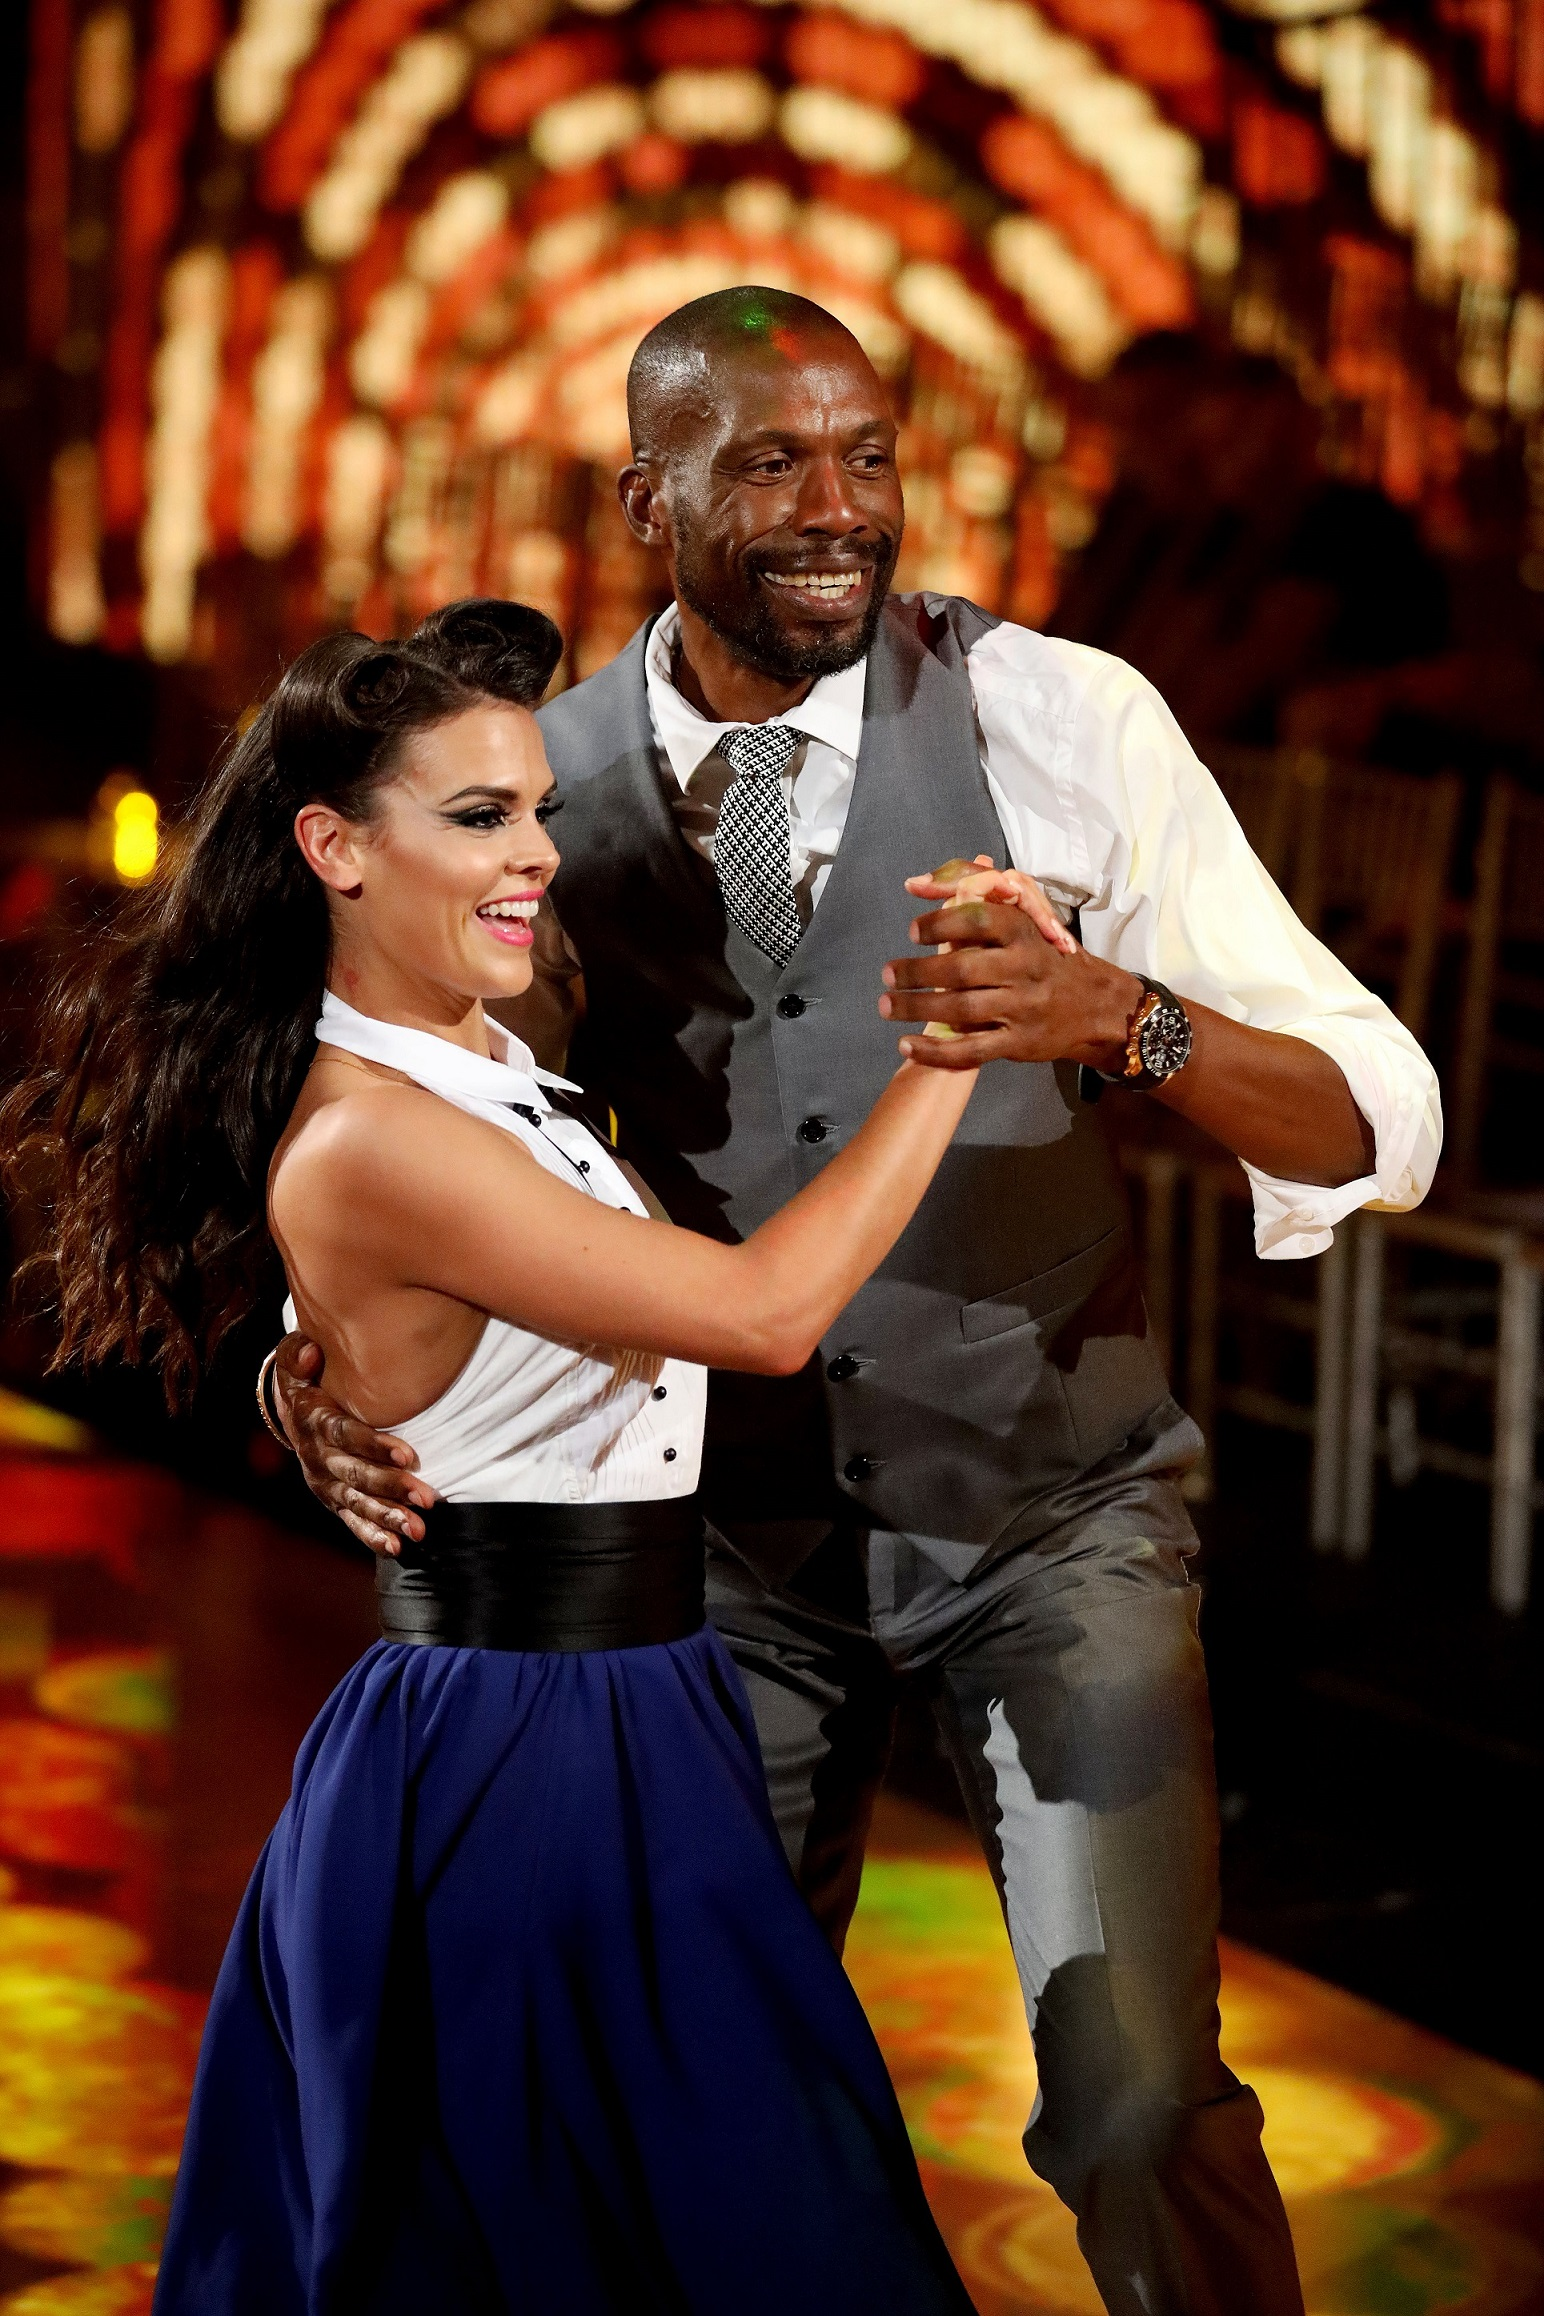 Curtly Ambrose is out for a duck on DANCING WITH THE STARS